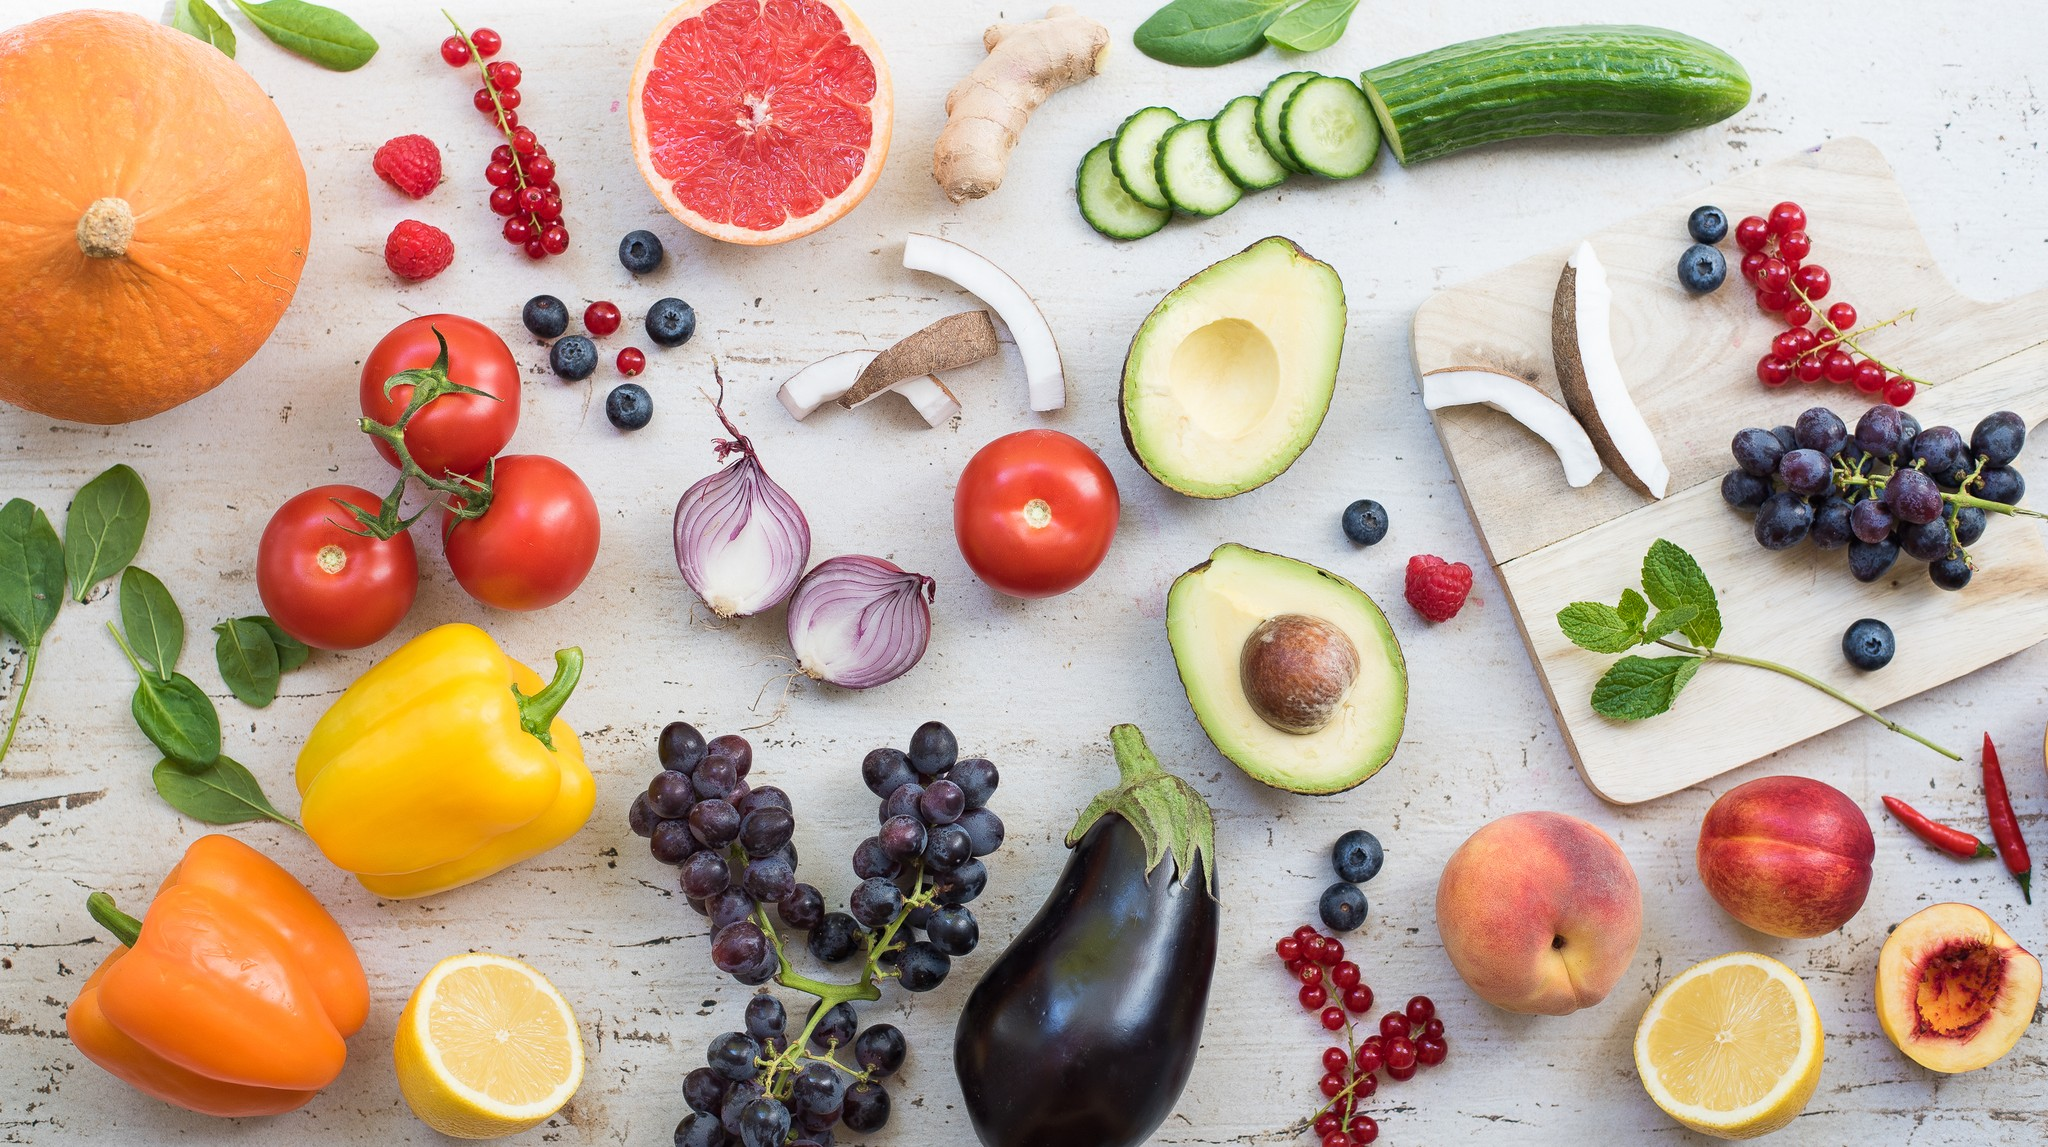 Superfoods That Can Prevent Fatigue